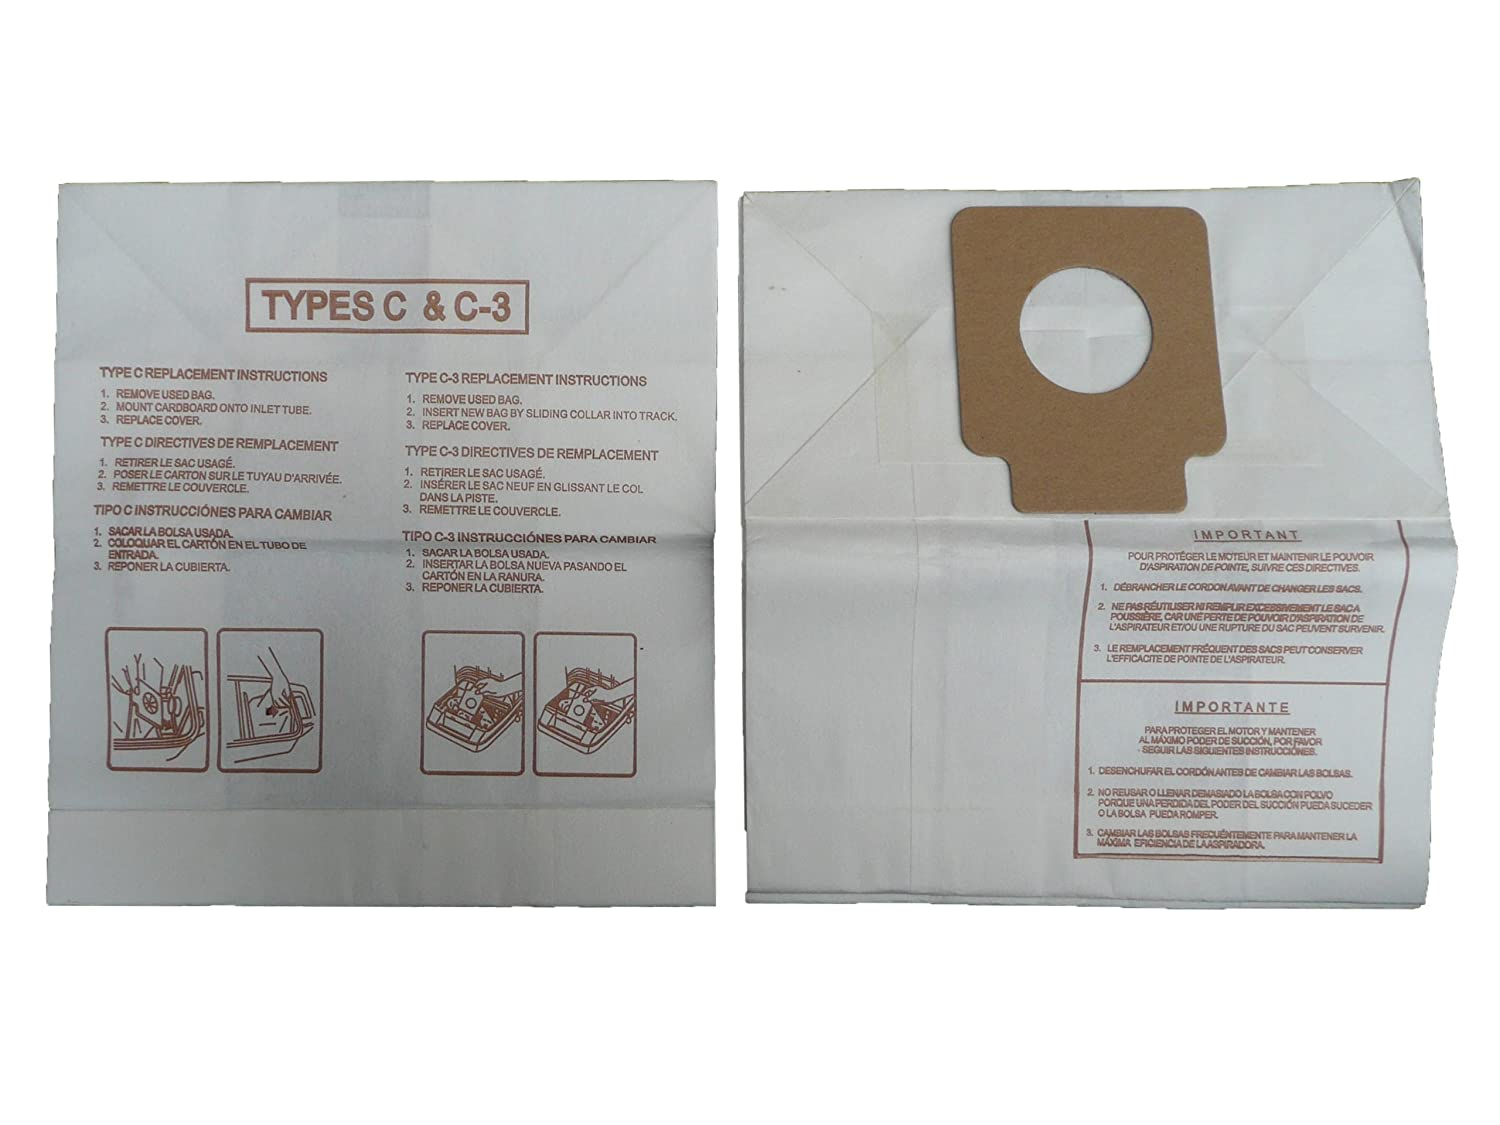 EnviroCare Replacement Vacuum Bags for Panasonic Type C C-3 C3 Canisters 6 Bags